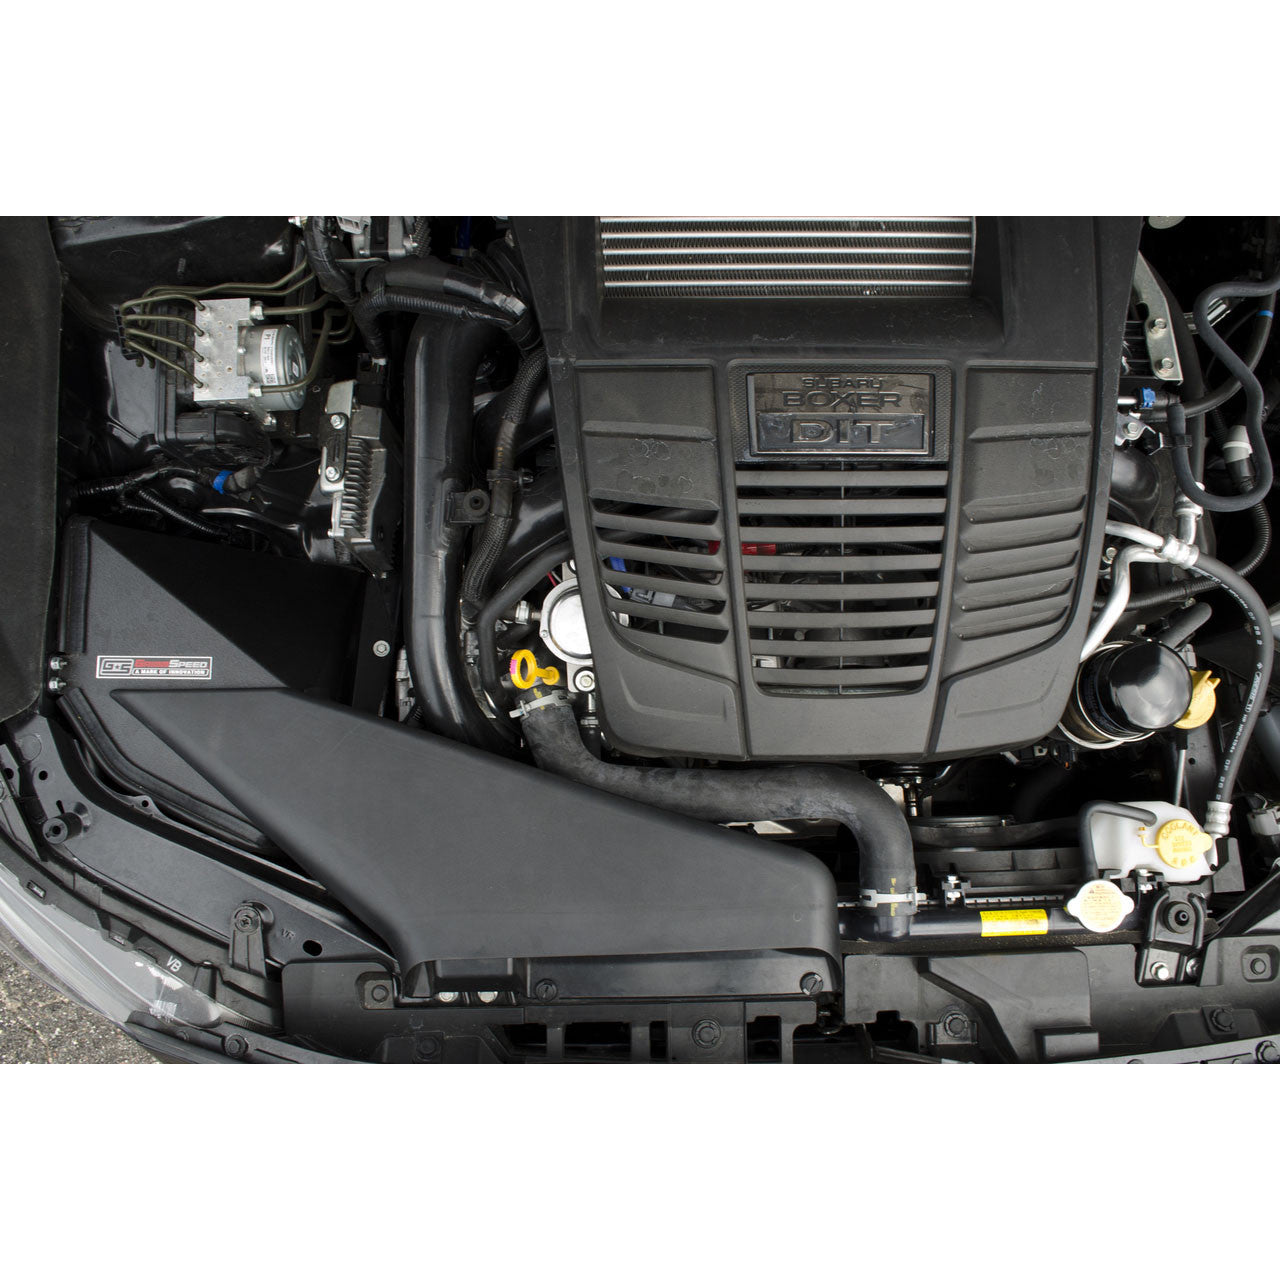 grimmspeed stealthbox intake 2015 wrx. Black Bedroom Furniture Sets. Home Design Ideas